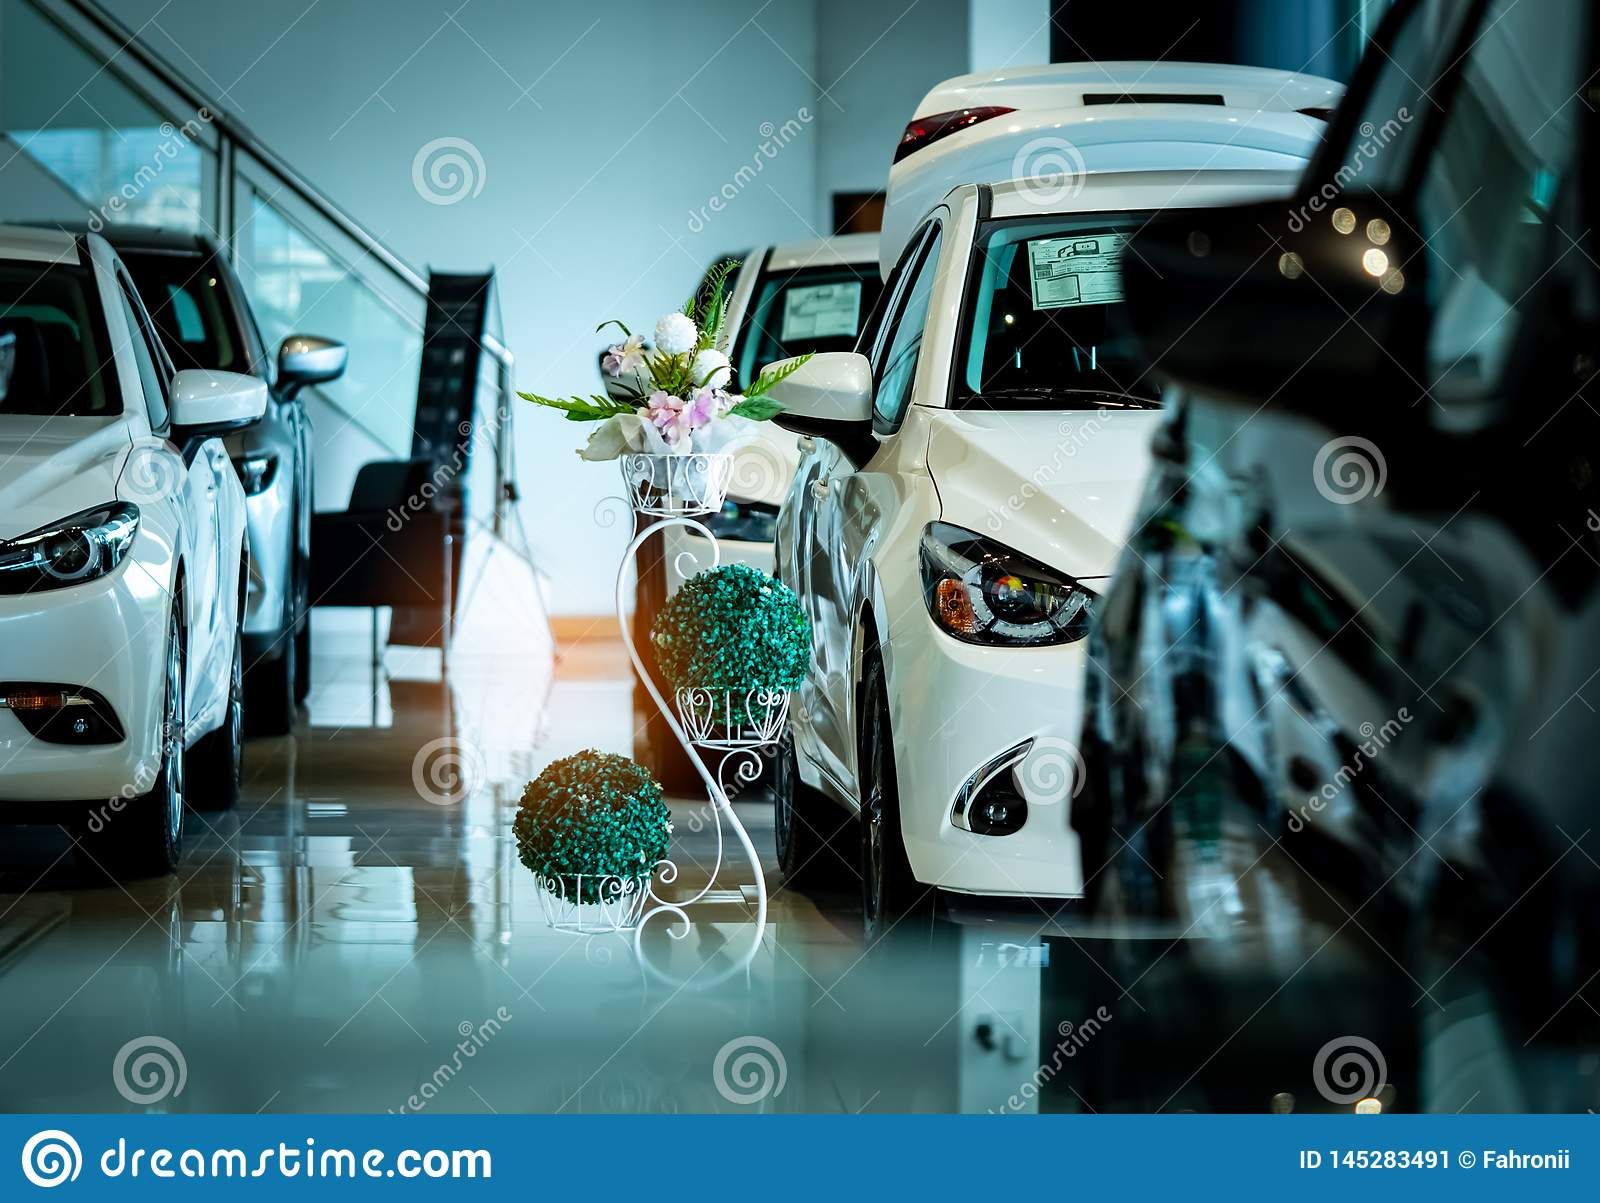 New Luxury Shiny Compact Car Parked In Modern Showroom Car Dealership Office Car Retail Shop Electric Car Technology Stock Image Image Of Industrial Concept 145283491